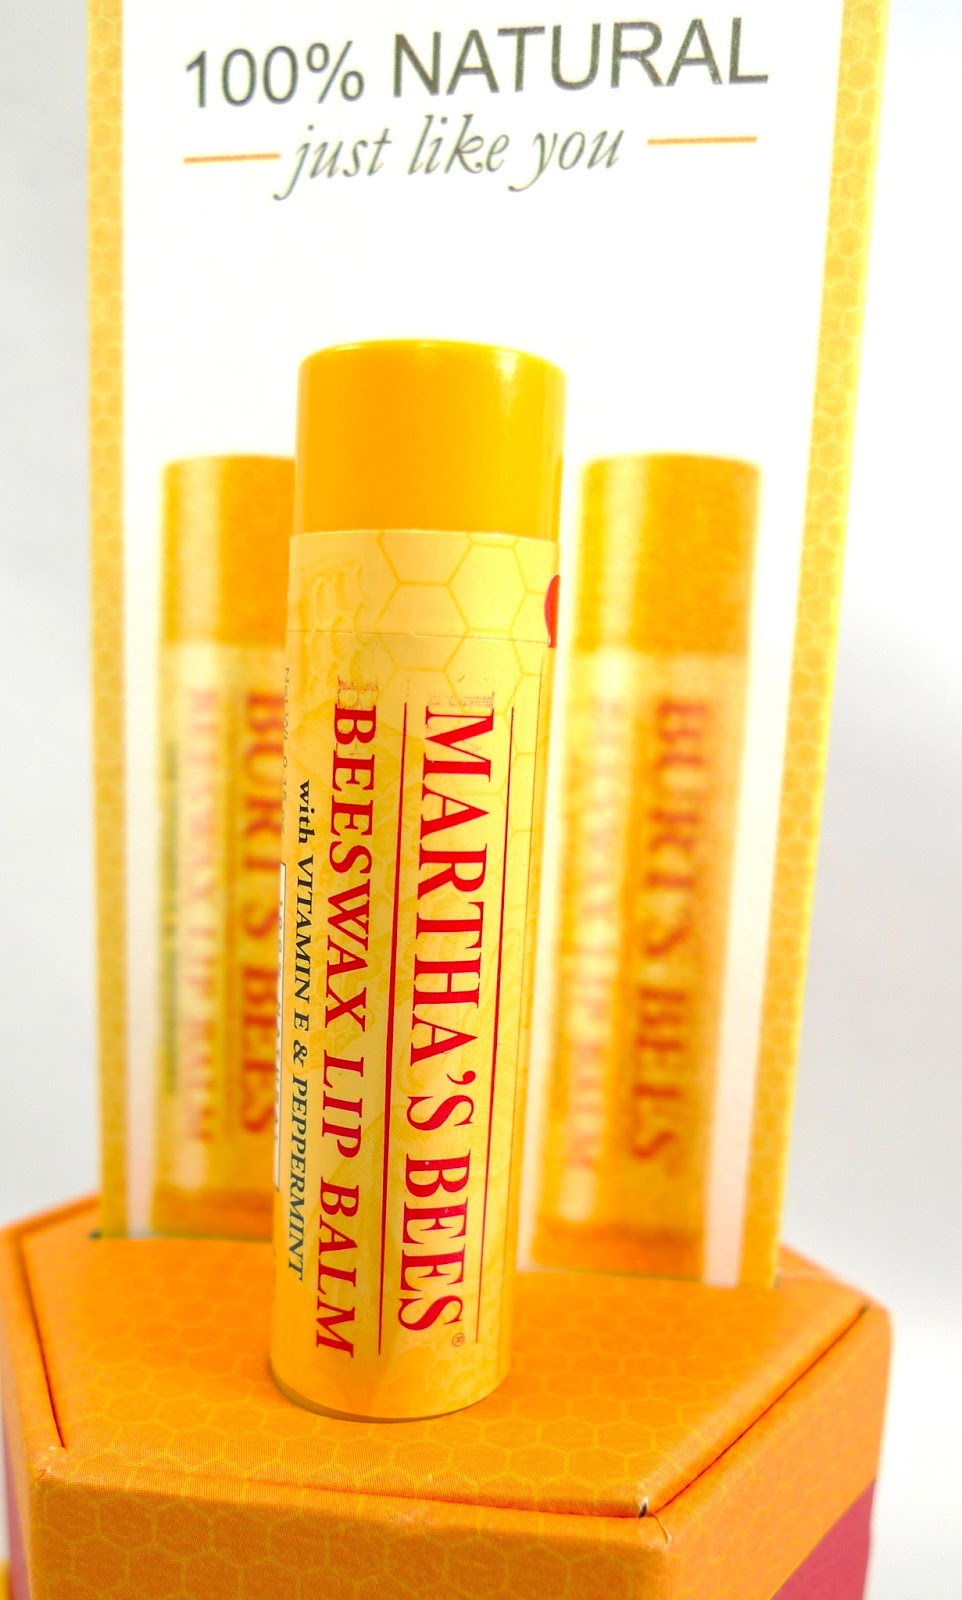 burt s bees lip balm targeting and segmentation Find great deals on ebay for burts bees lip shimmer in lip balm burts bees lip balm burts bees lip shimmer burt's bees lip shimmer tinted lip balm.